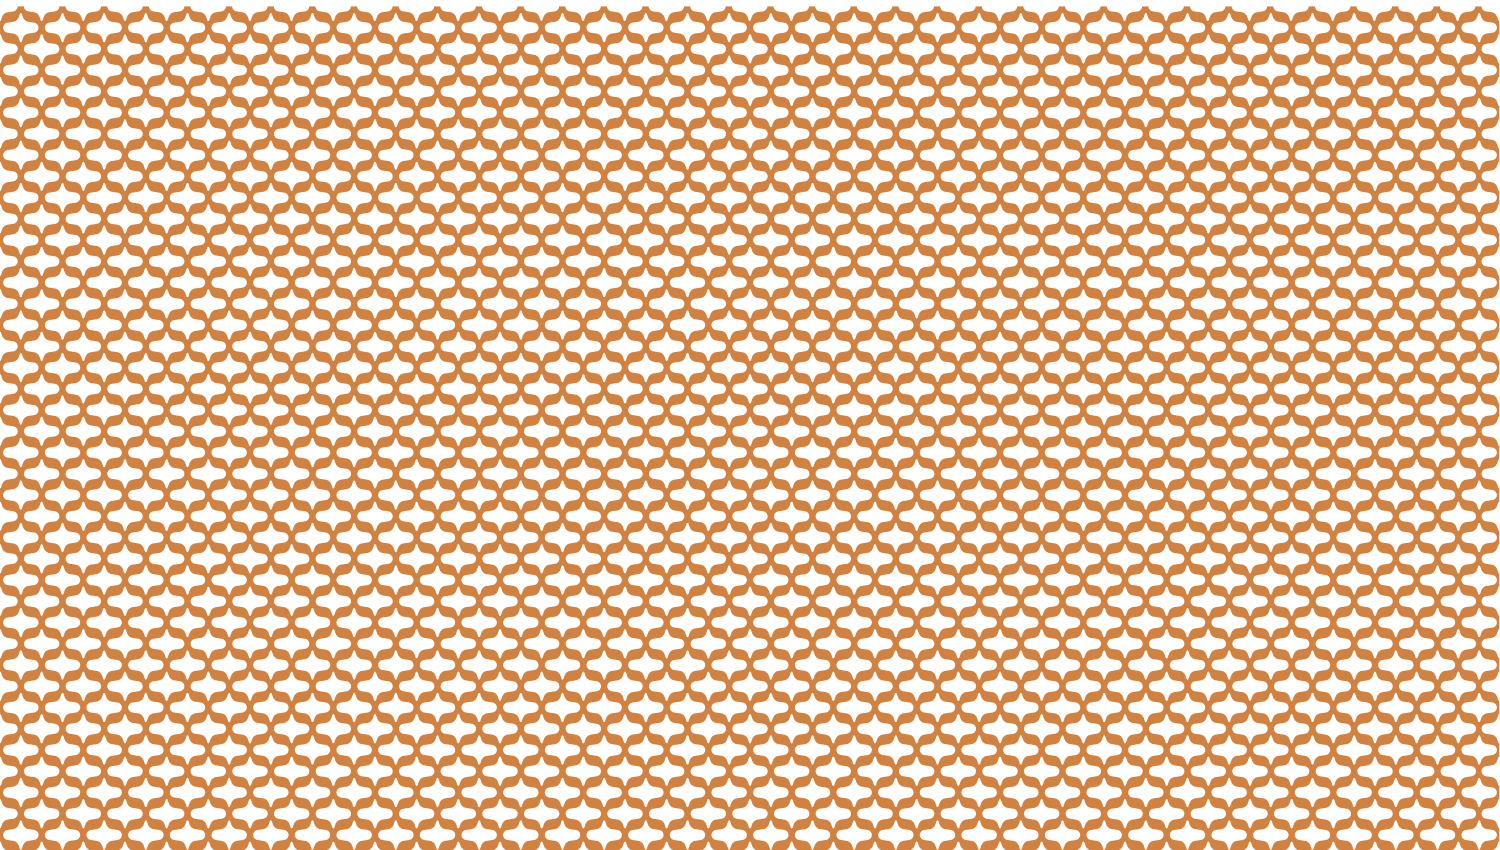 Parasoleil™ Seville© pattern displayed with a ochre color overlay